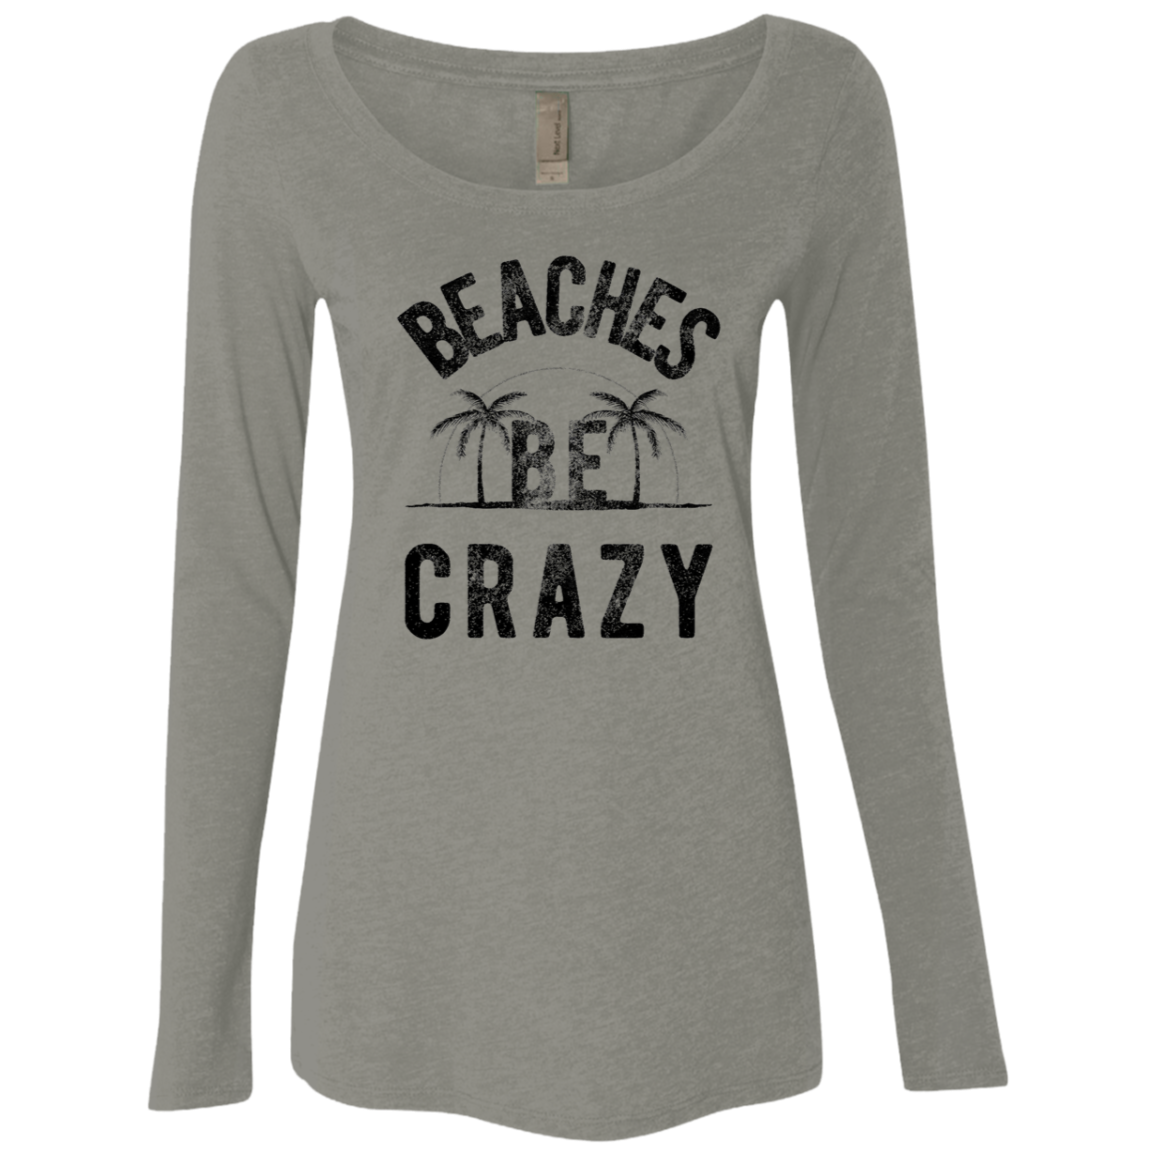 Beaches be Crazy Women's Long Sleeve Tee - Trendy Tees